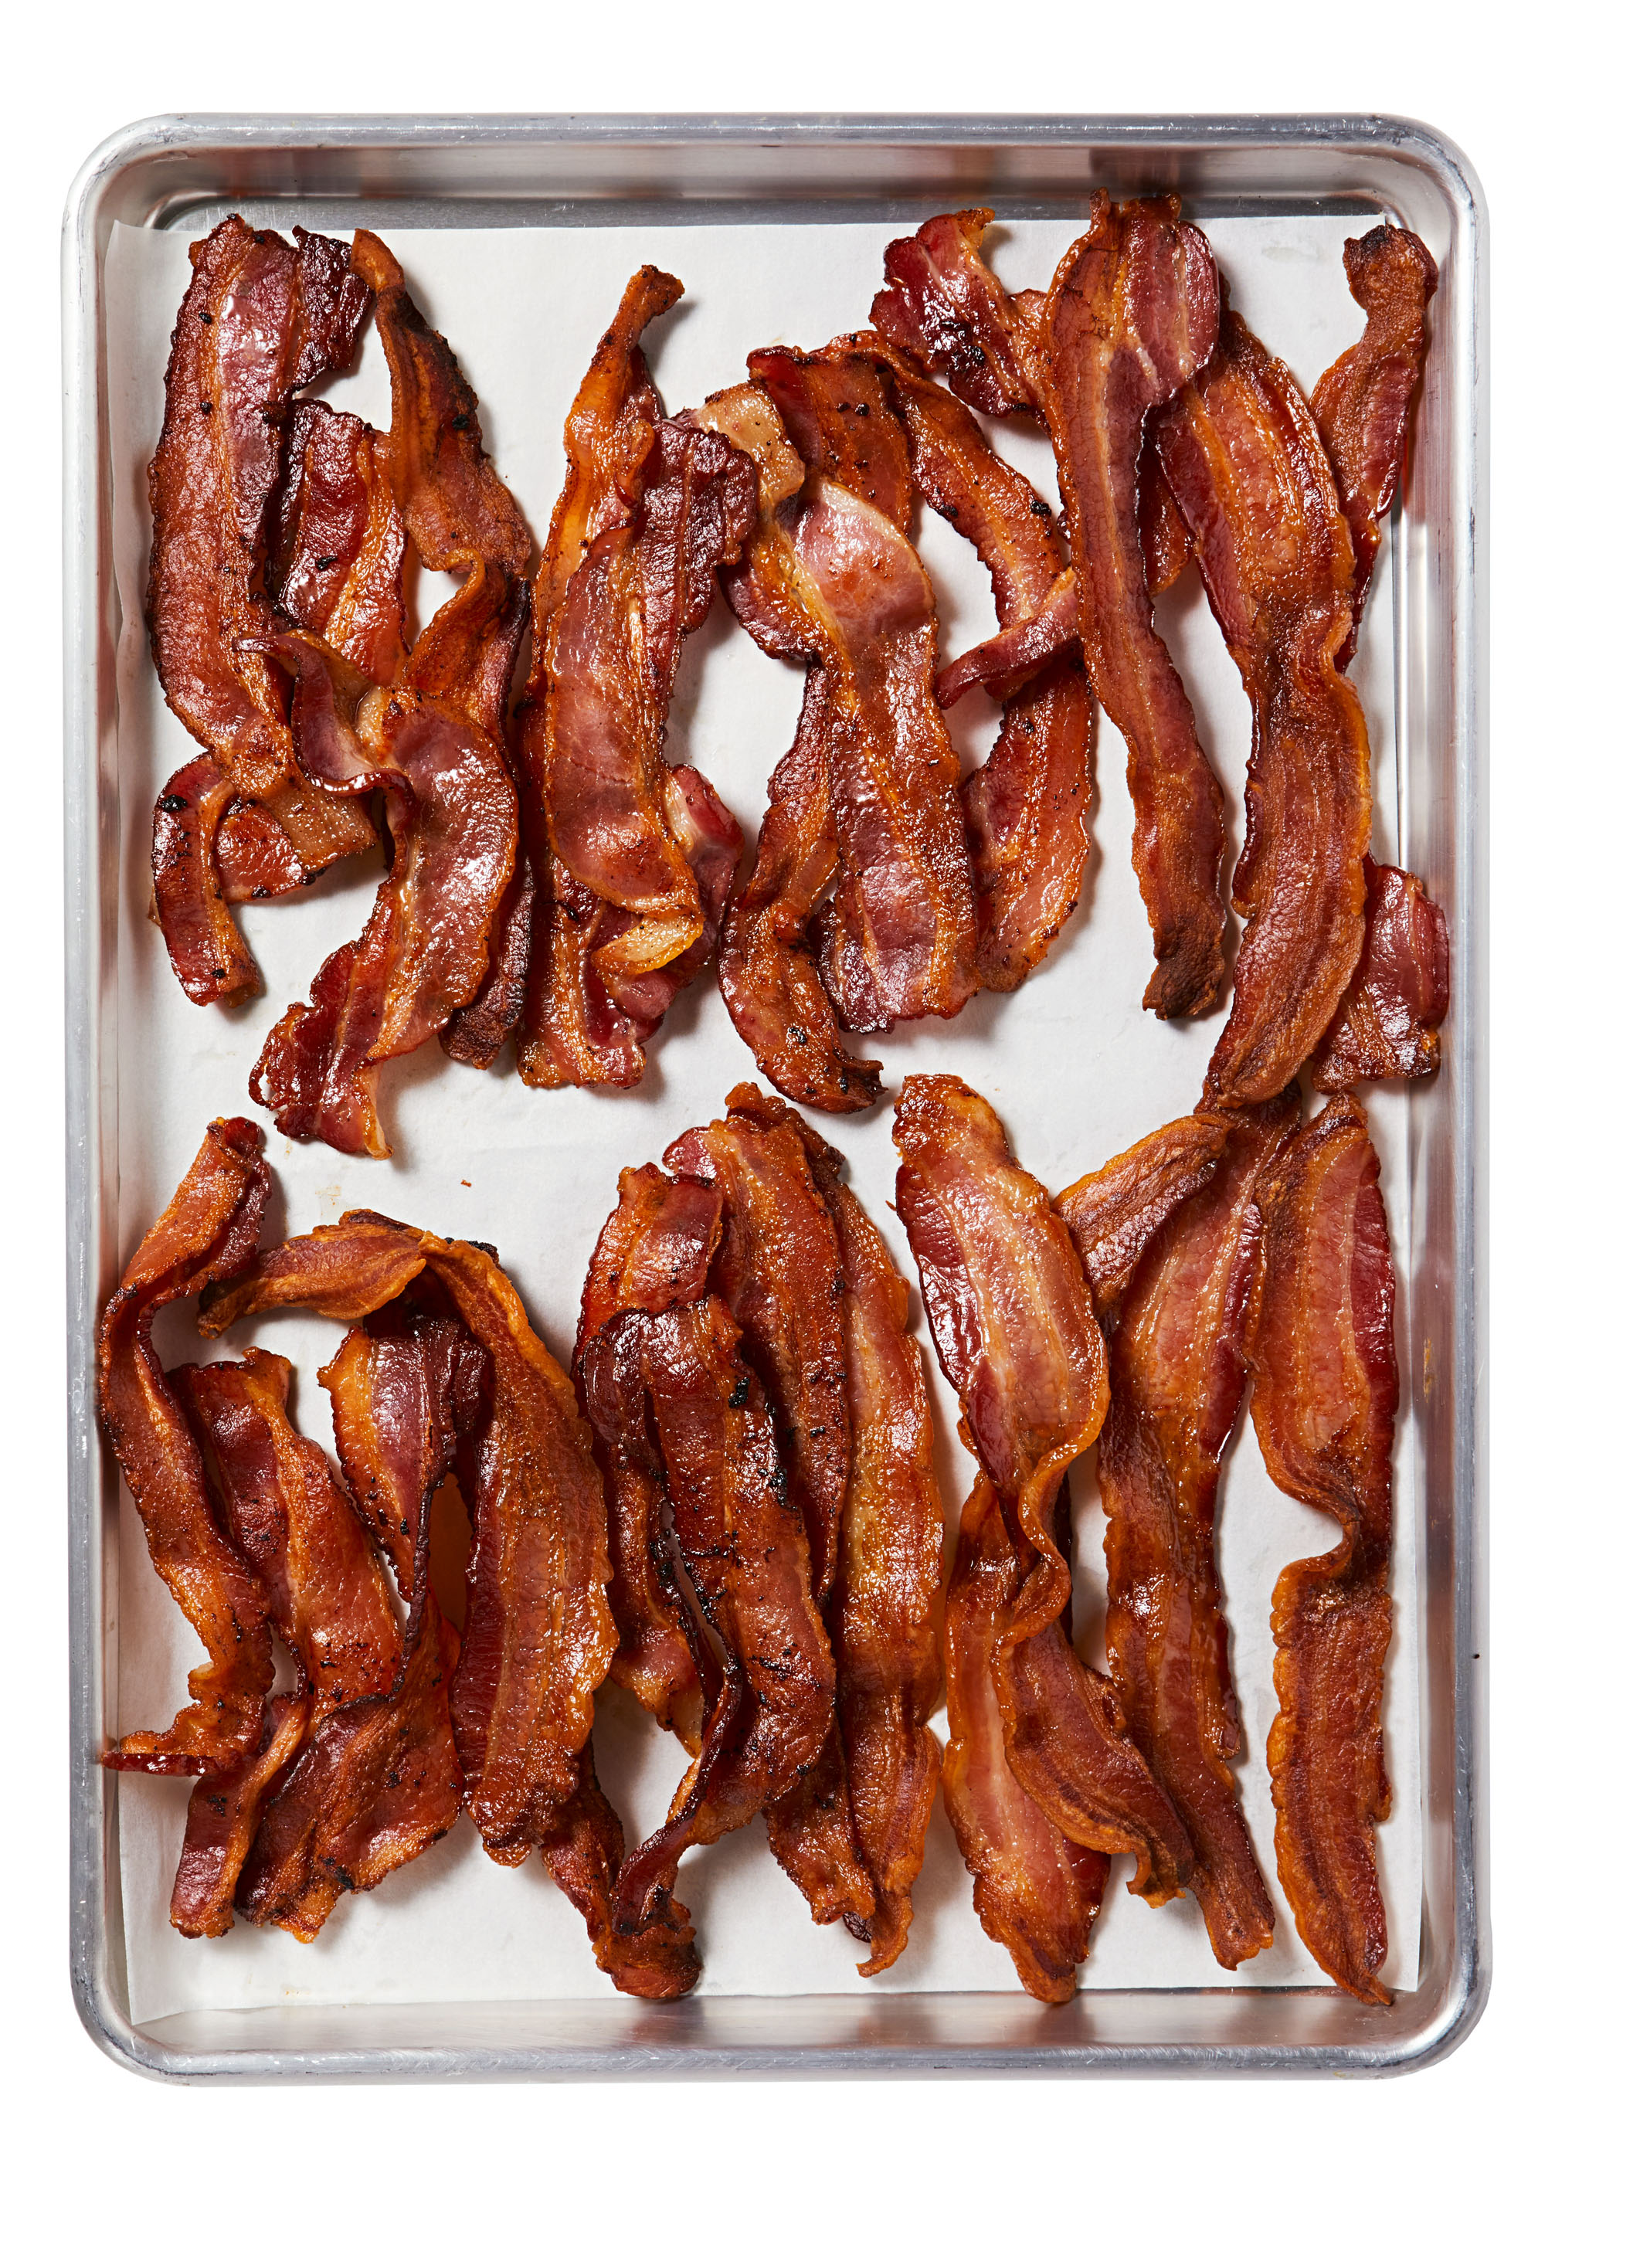 bacon on parchment paper-lined baking sheet